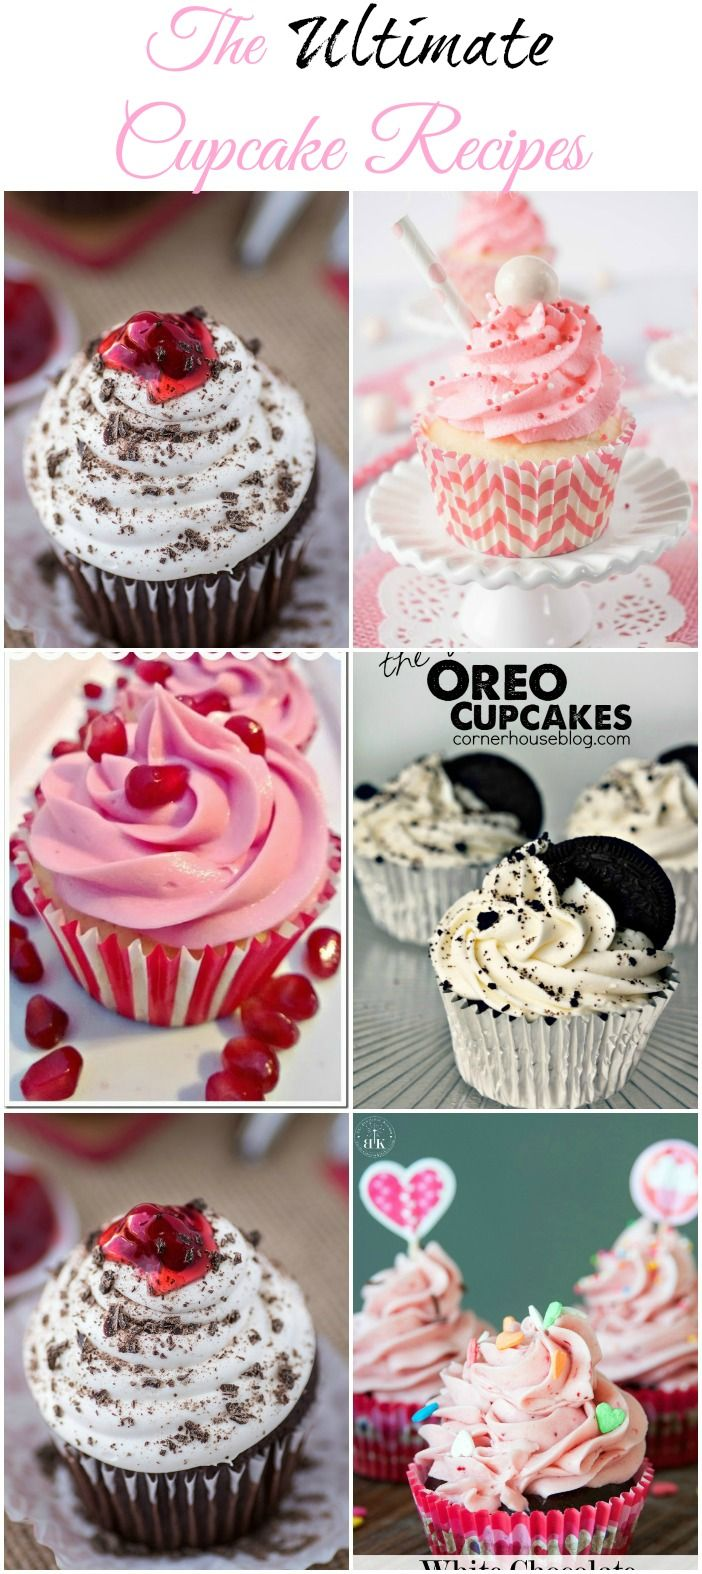 The Ultimate Cupcake Recipes